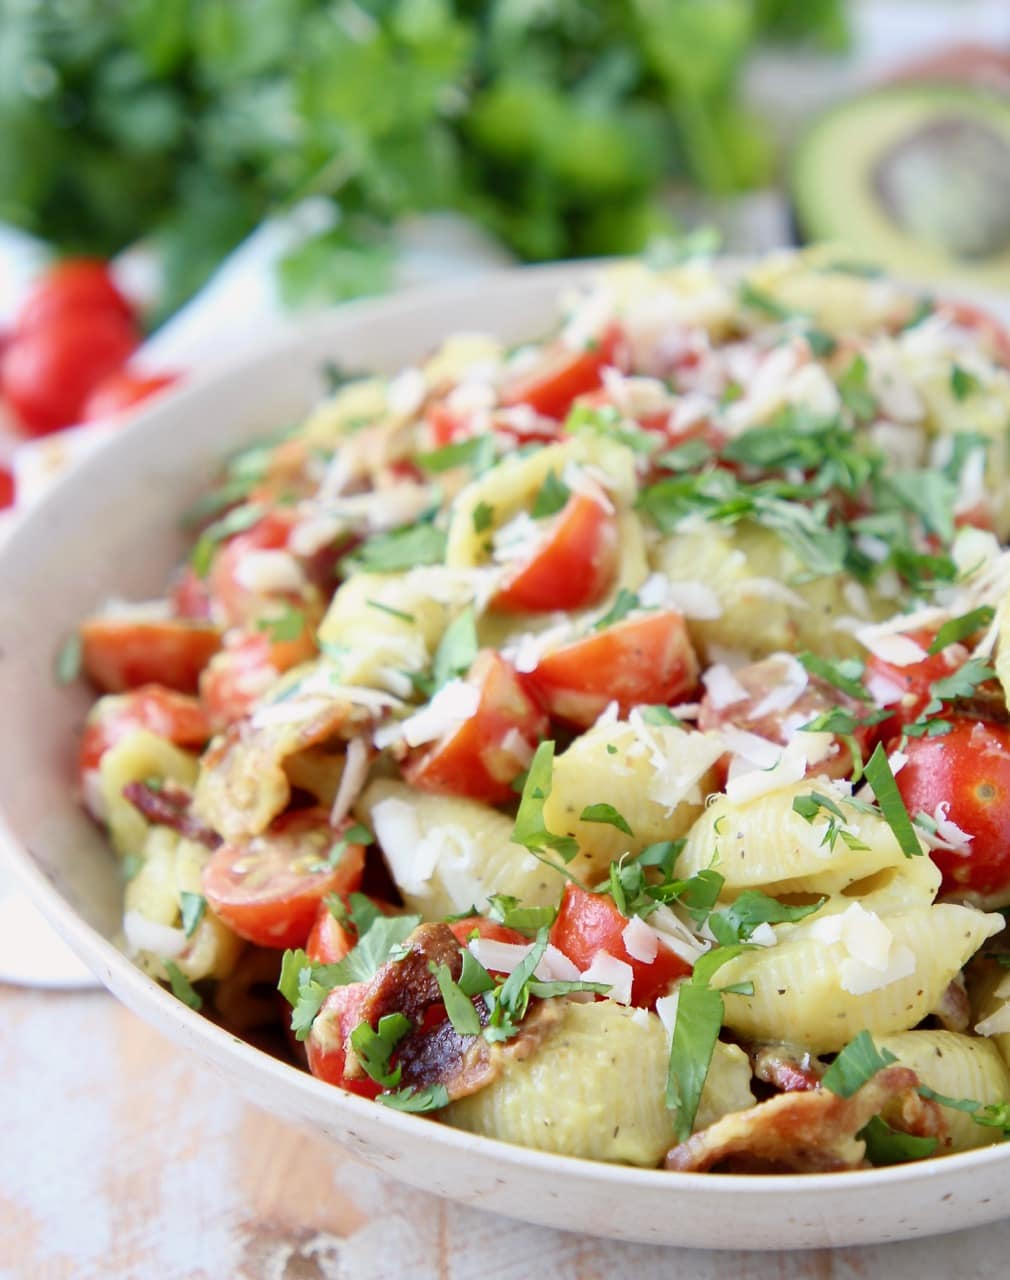 Pasta salad in bowl with bacon, tomatoes and parmesan cheese